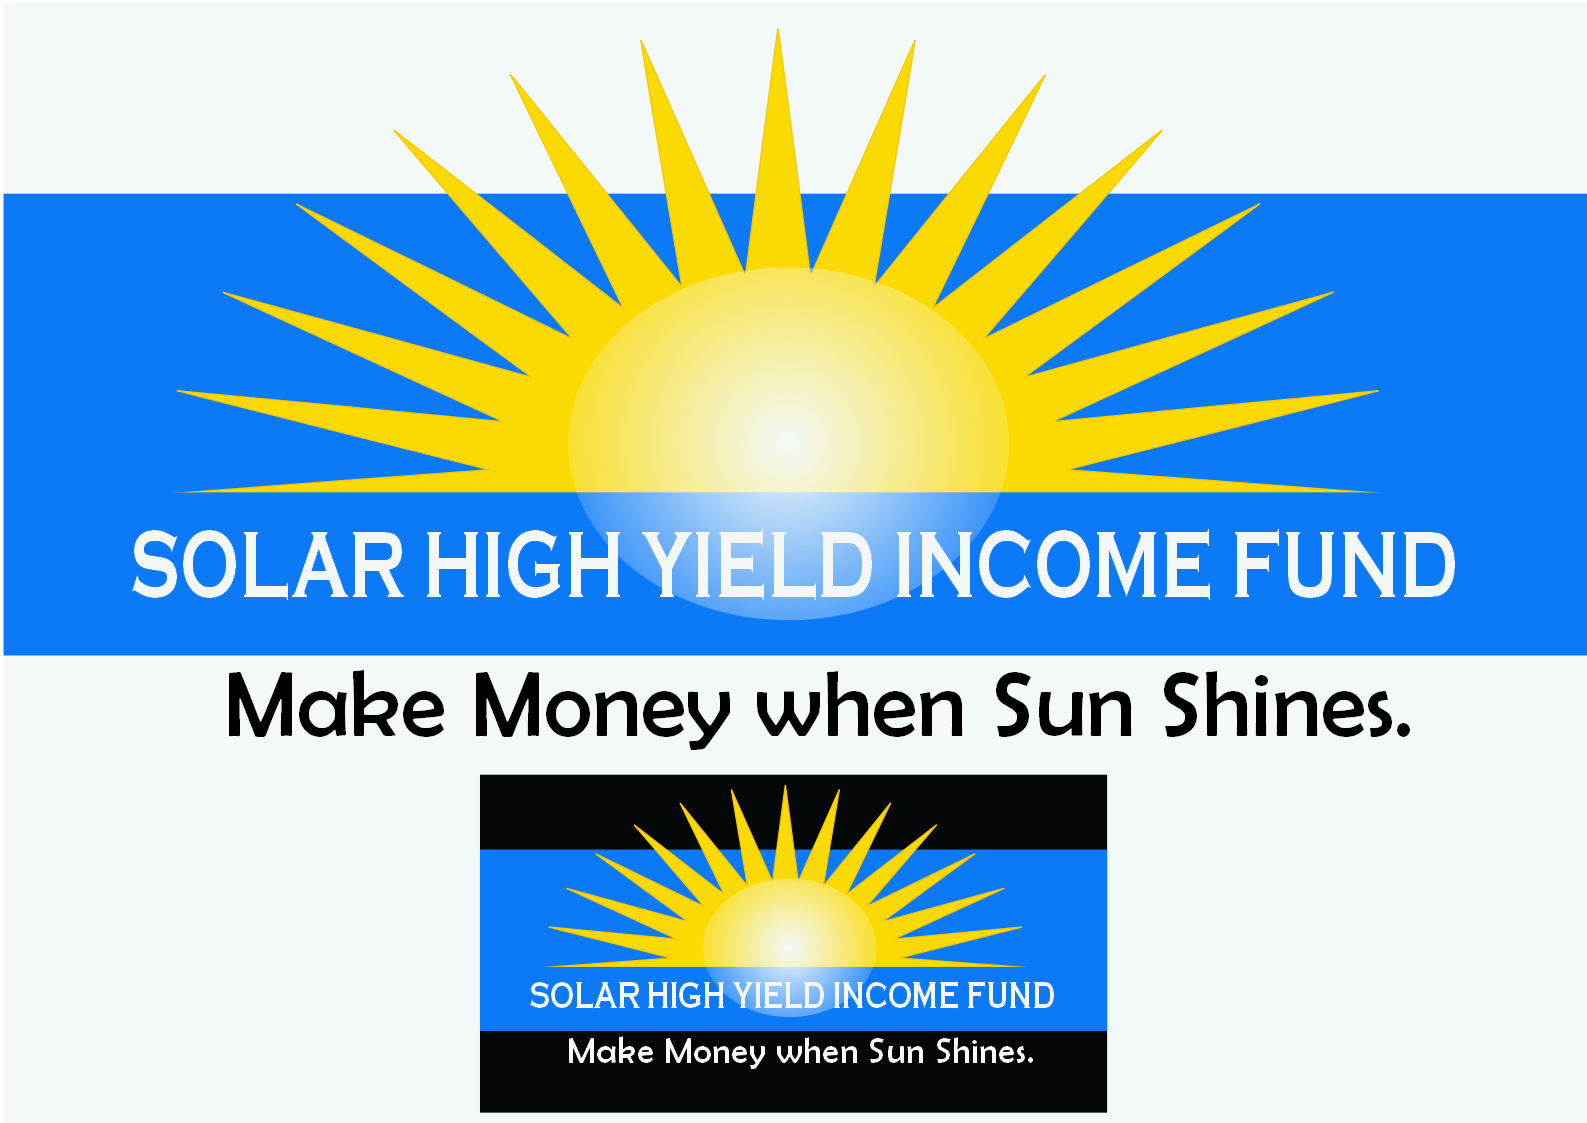 Logo Design by Heri Susanto - Entry No. 67 in the Logo Design Contest Logo Design Needed for Exciting New Company Solar High Yield Income Fund.